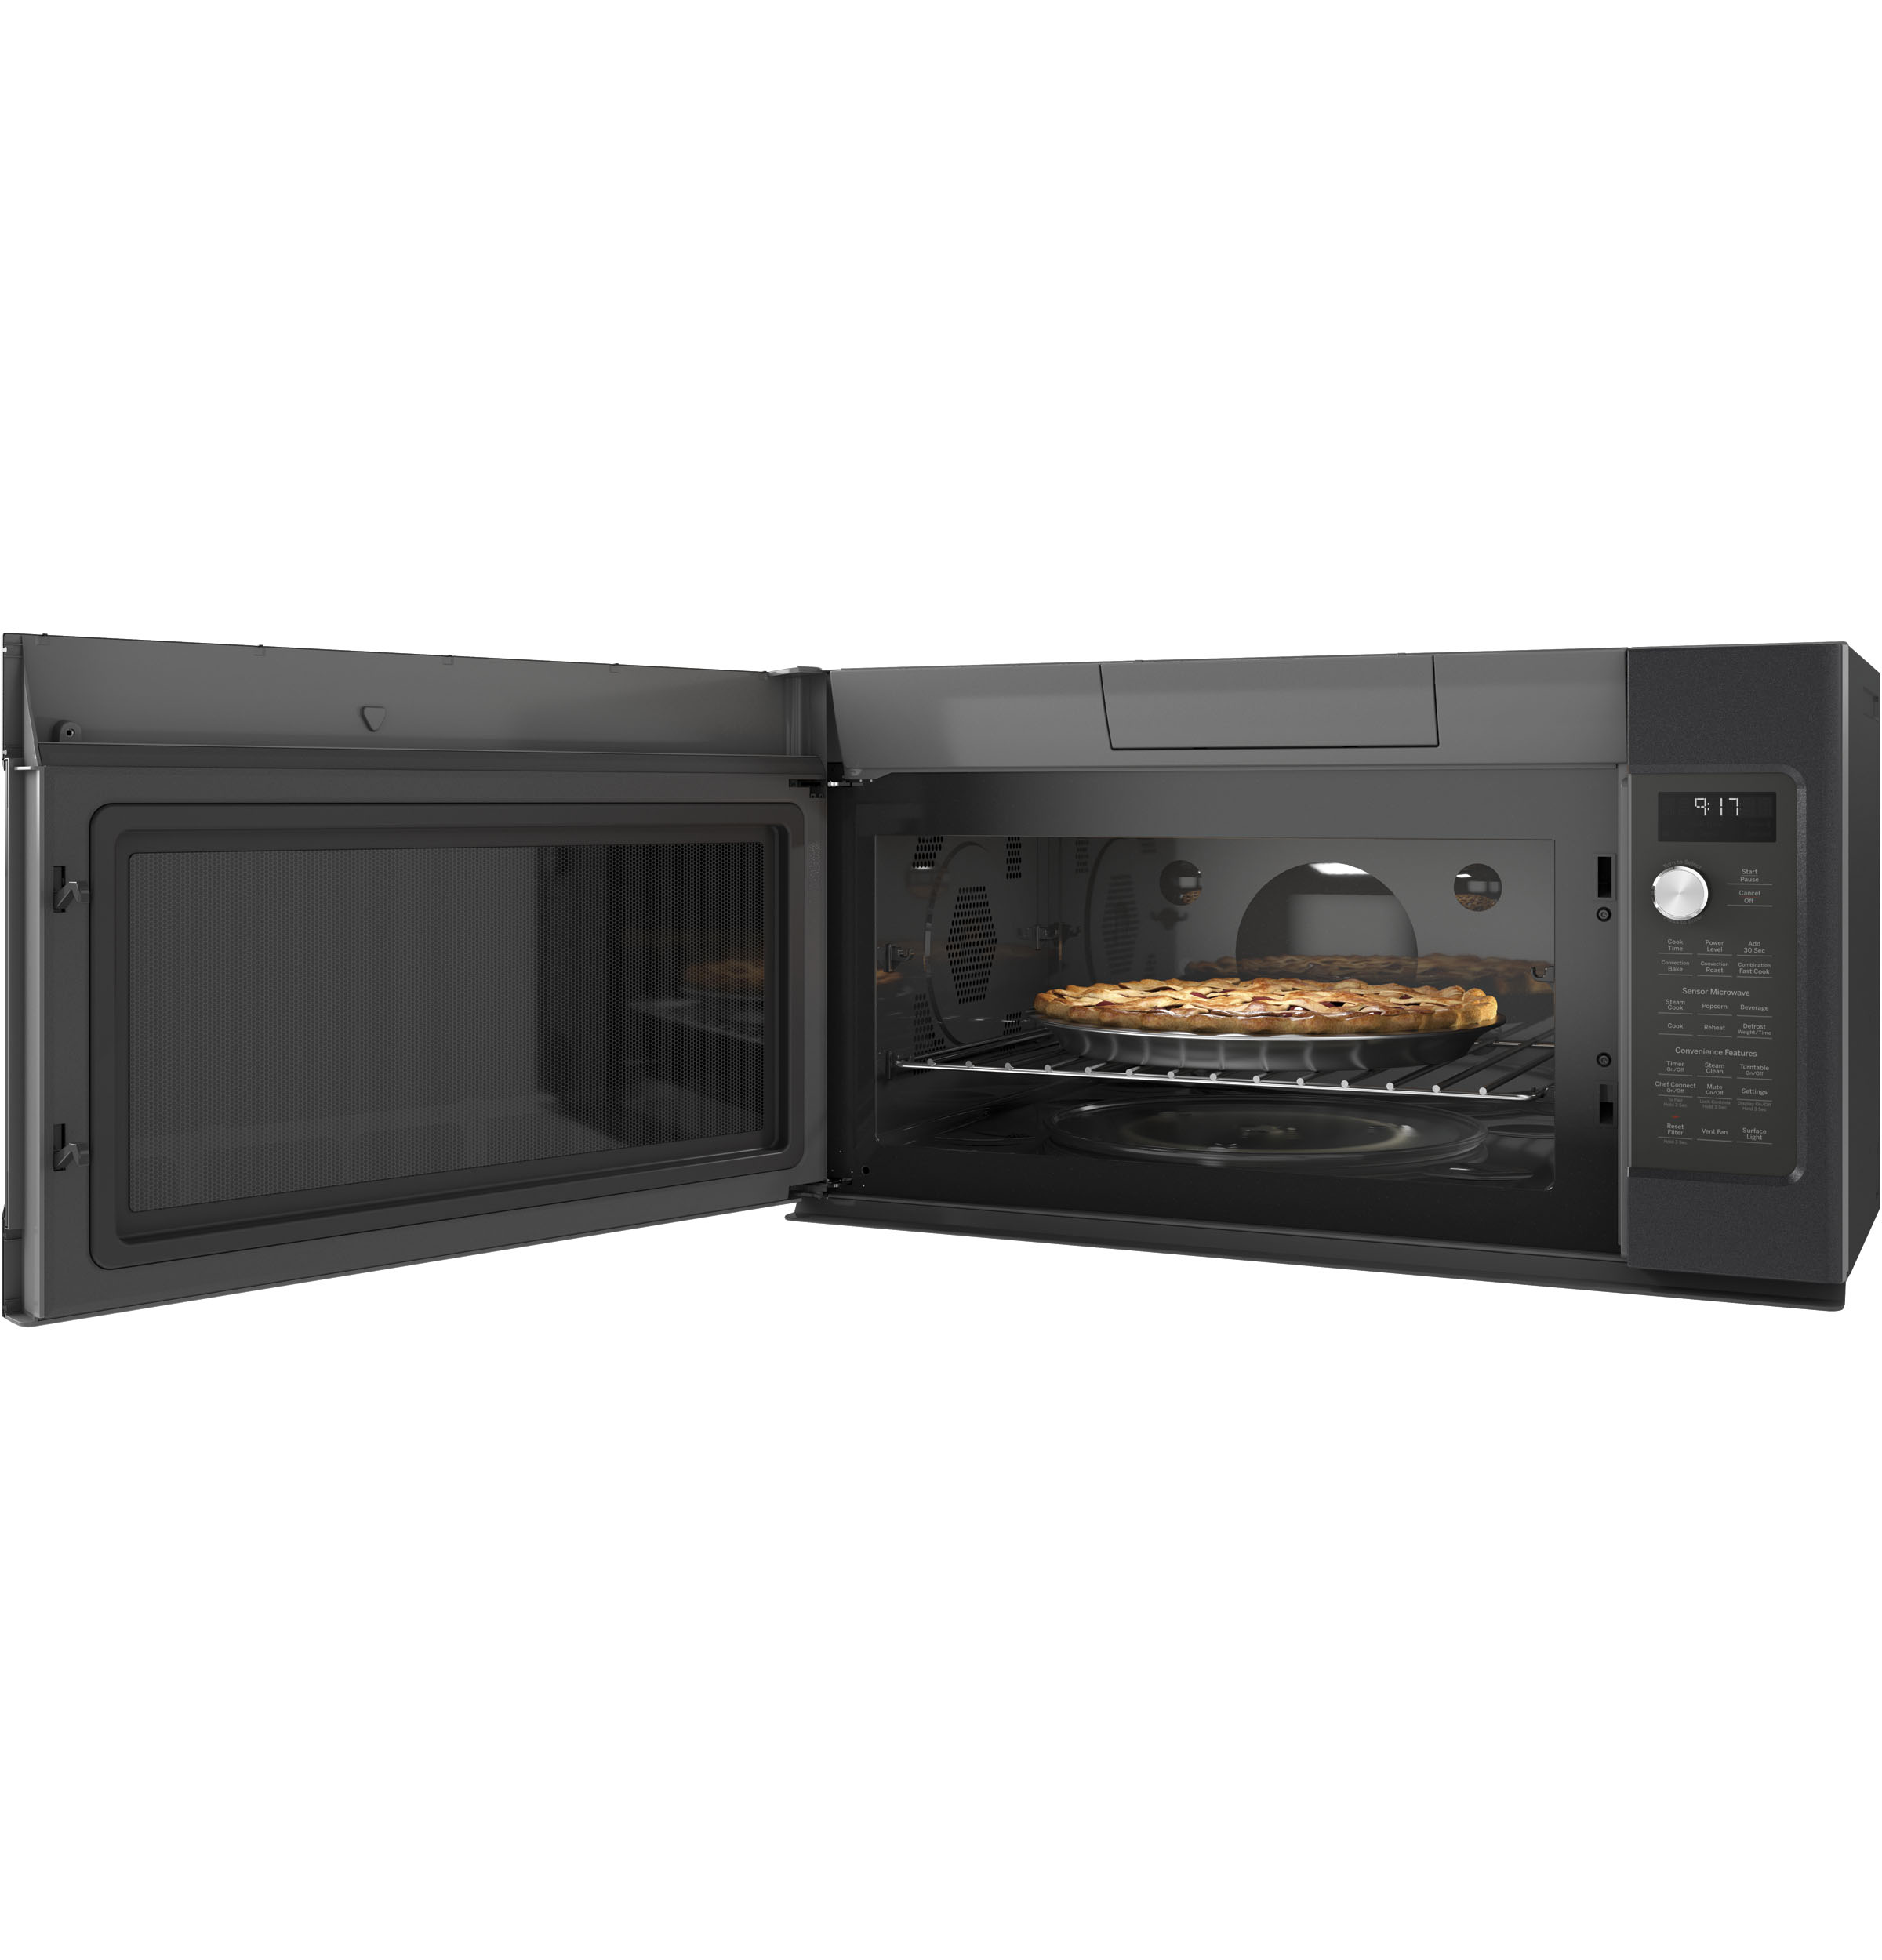 GE Café™ Series 1.7 Cu. Ft. Convection Over-the-Range Microwave Oven